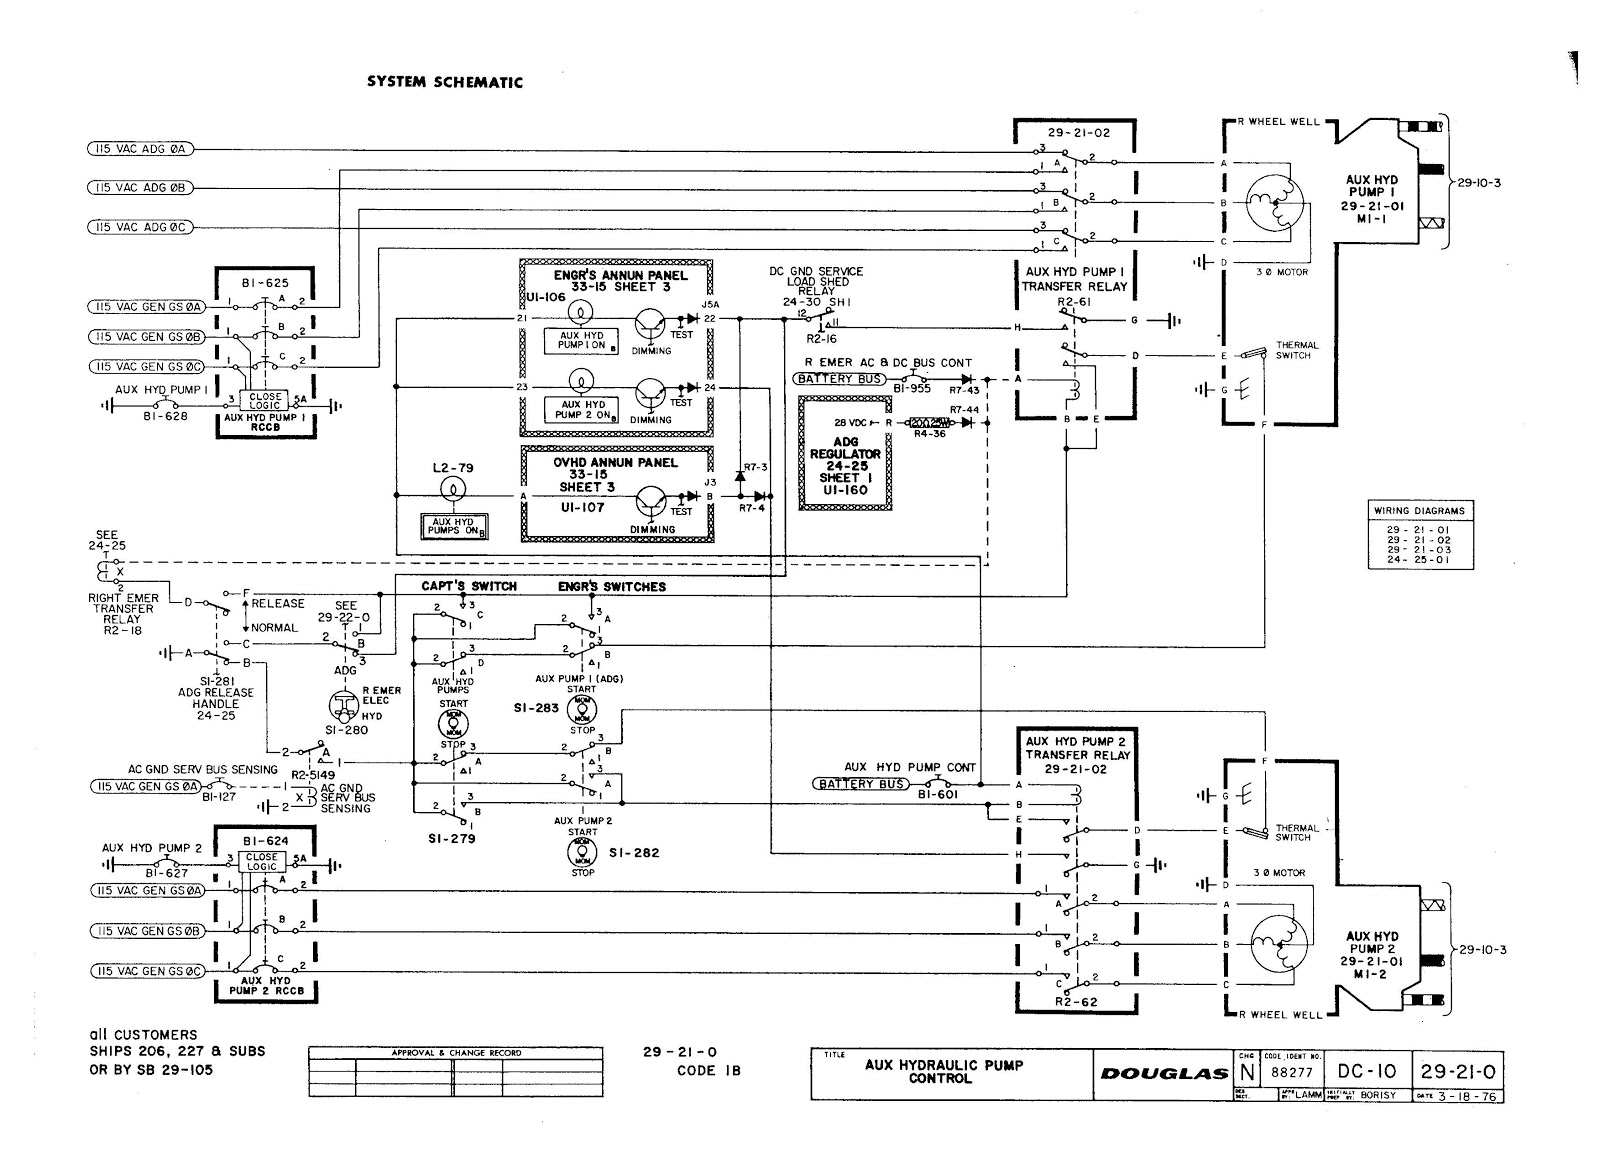 Schematic+diagram+dc+10+hydraulic+001 part 66 virtual school aircraft wiring and schematic diagrams Motor Control Schematic Diagram Symbols at webbmarketing.co